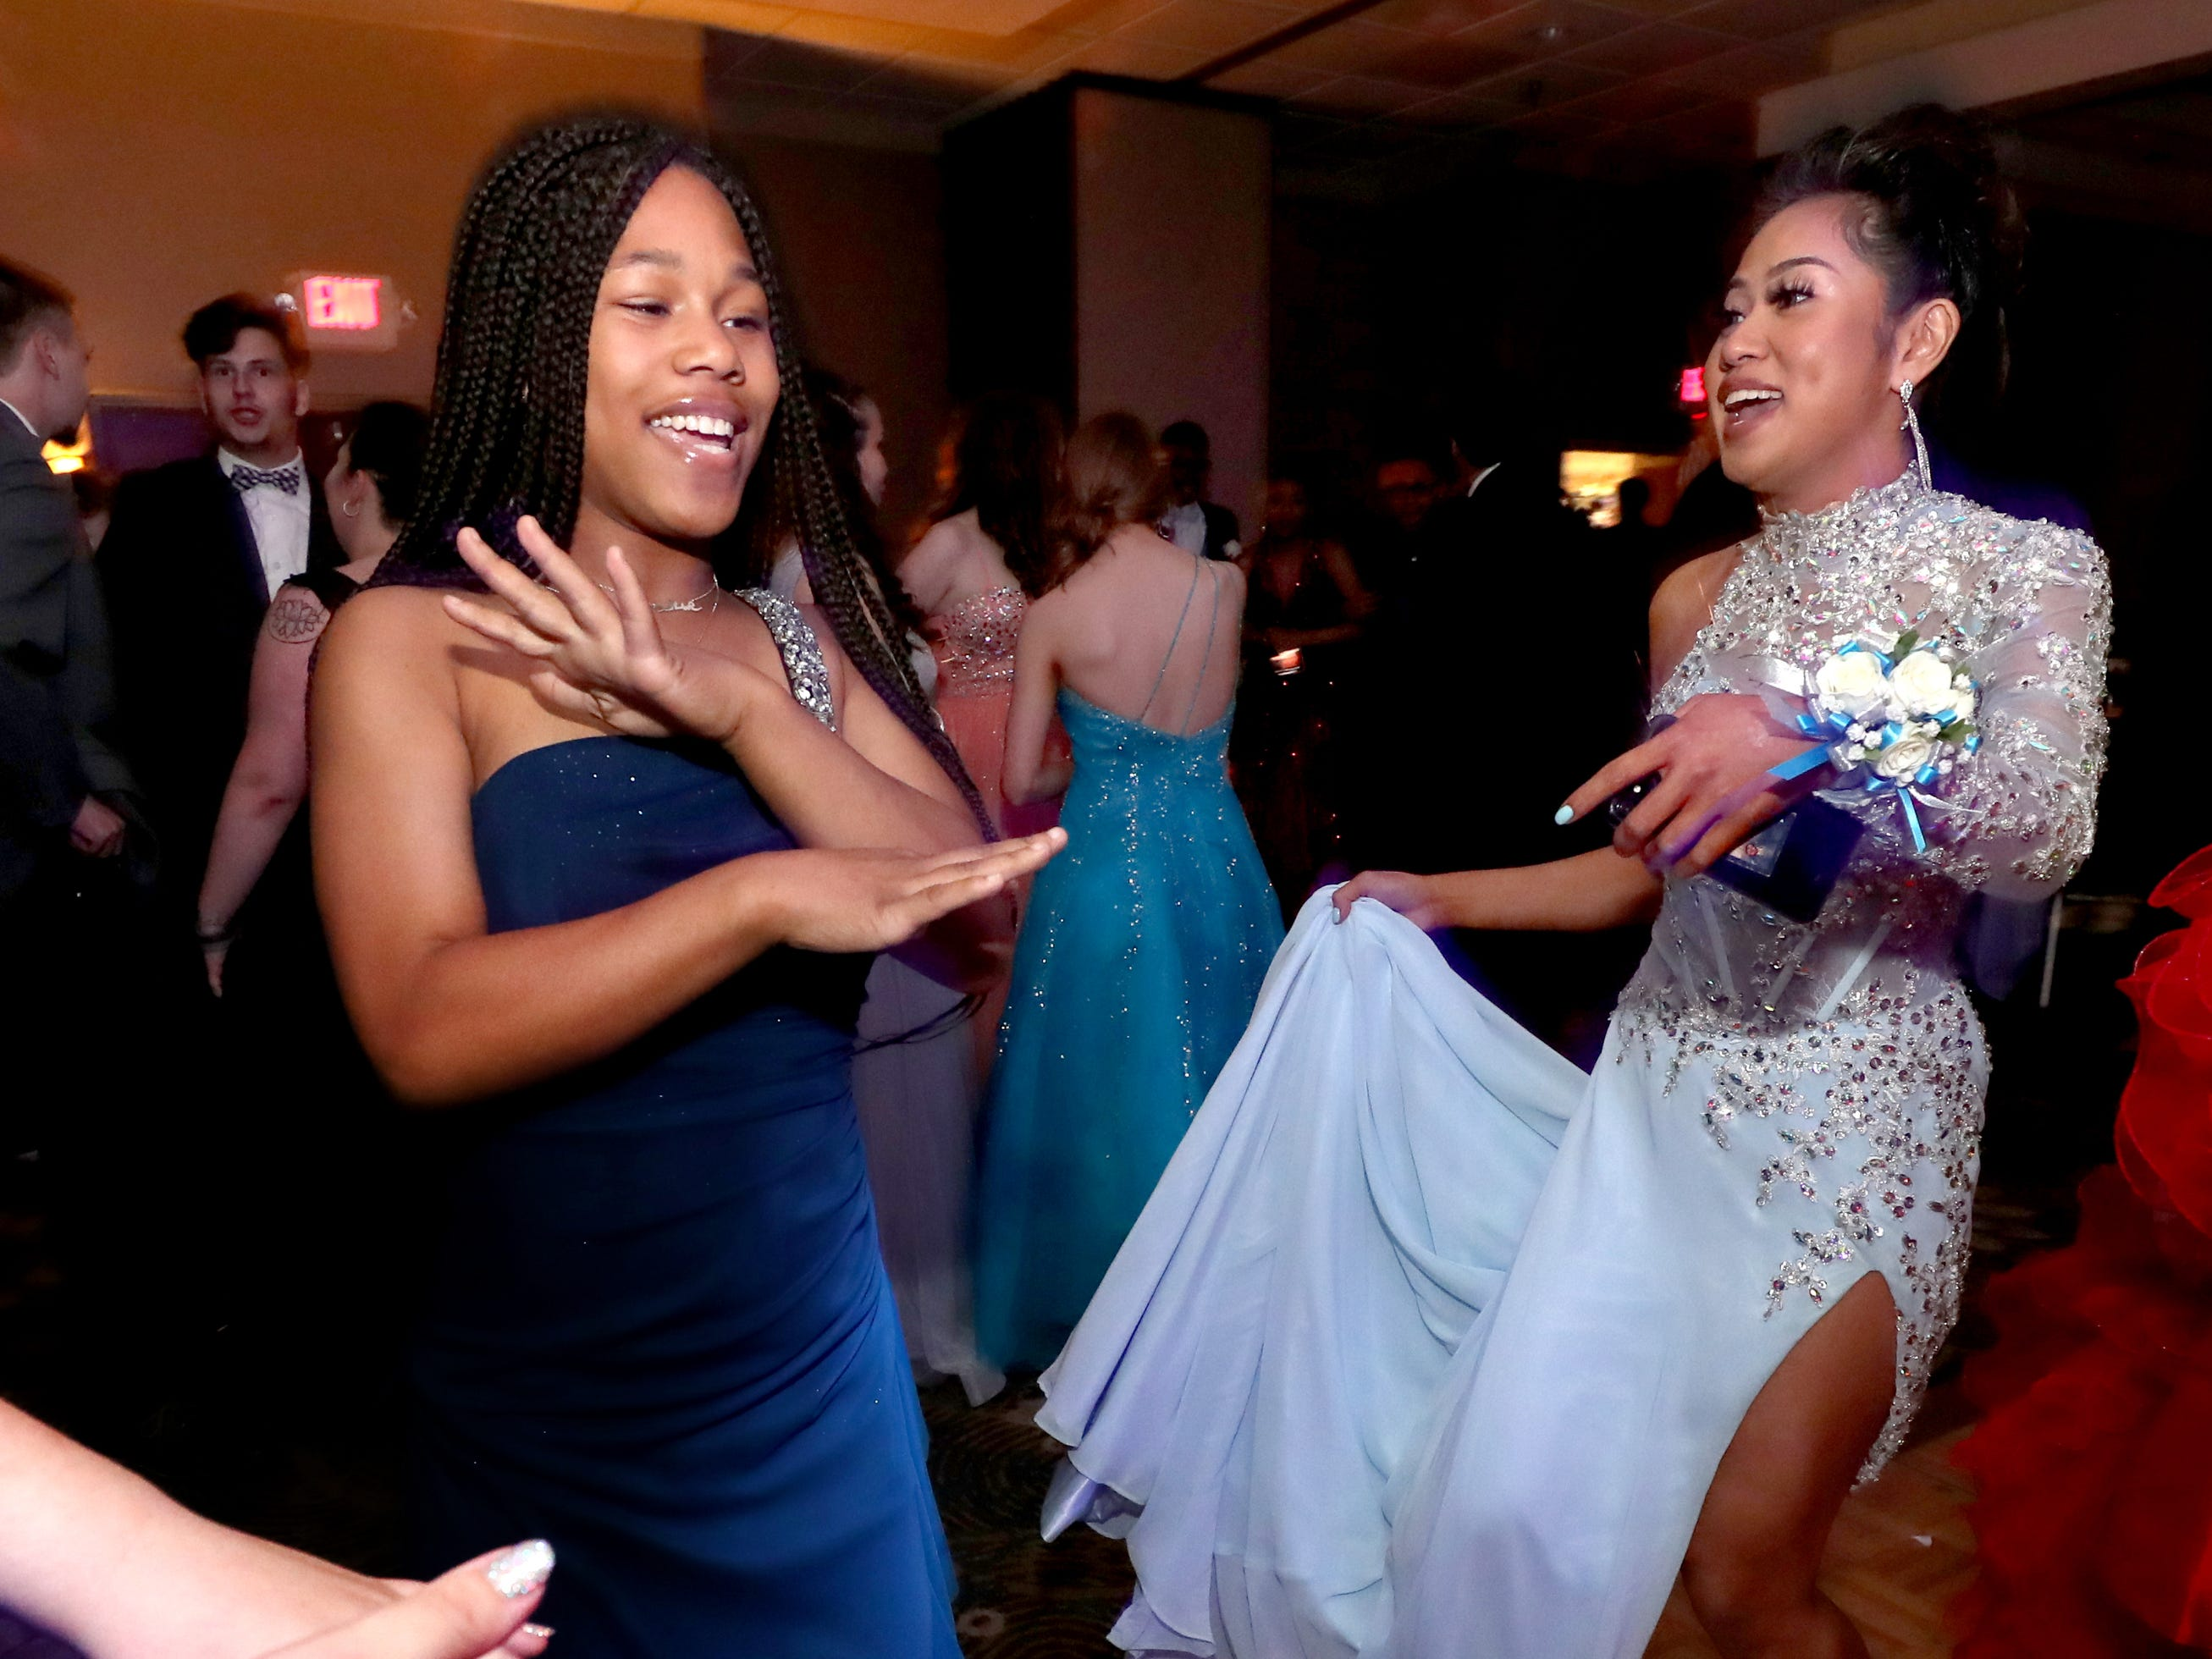 Yaqueenisha Murray, left and Anna Kounboribounsak, right dancing at Holloway's prom at the DoubleTree on Thursday April 18, 2019.